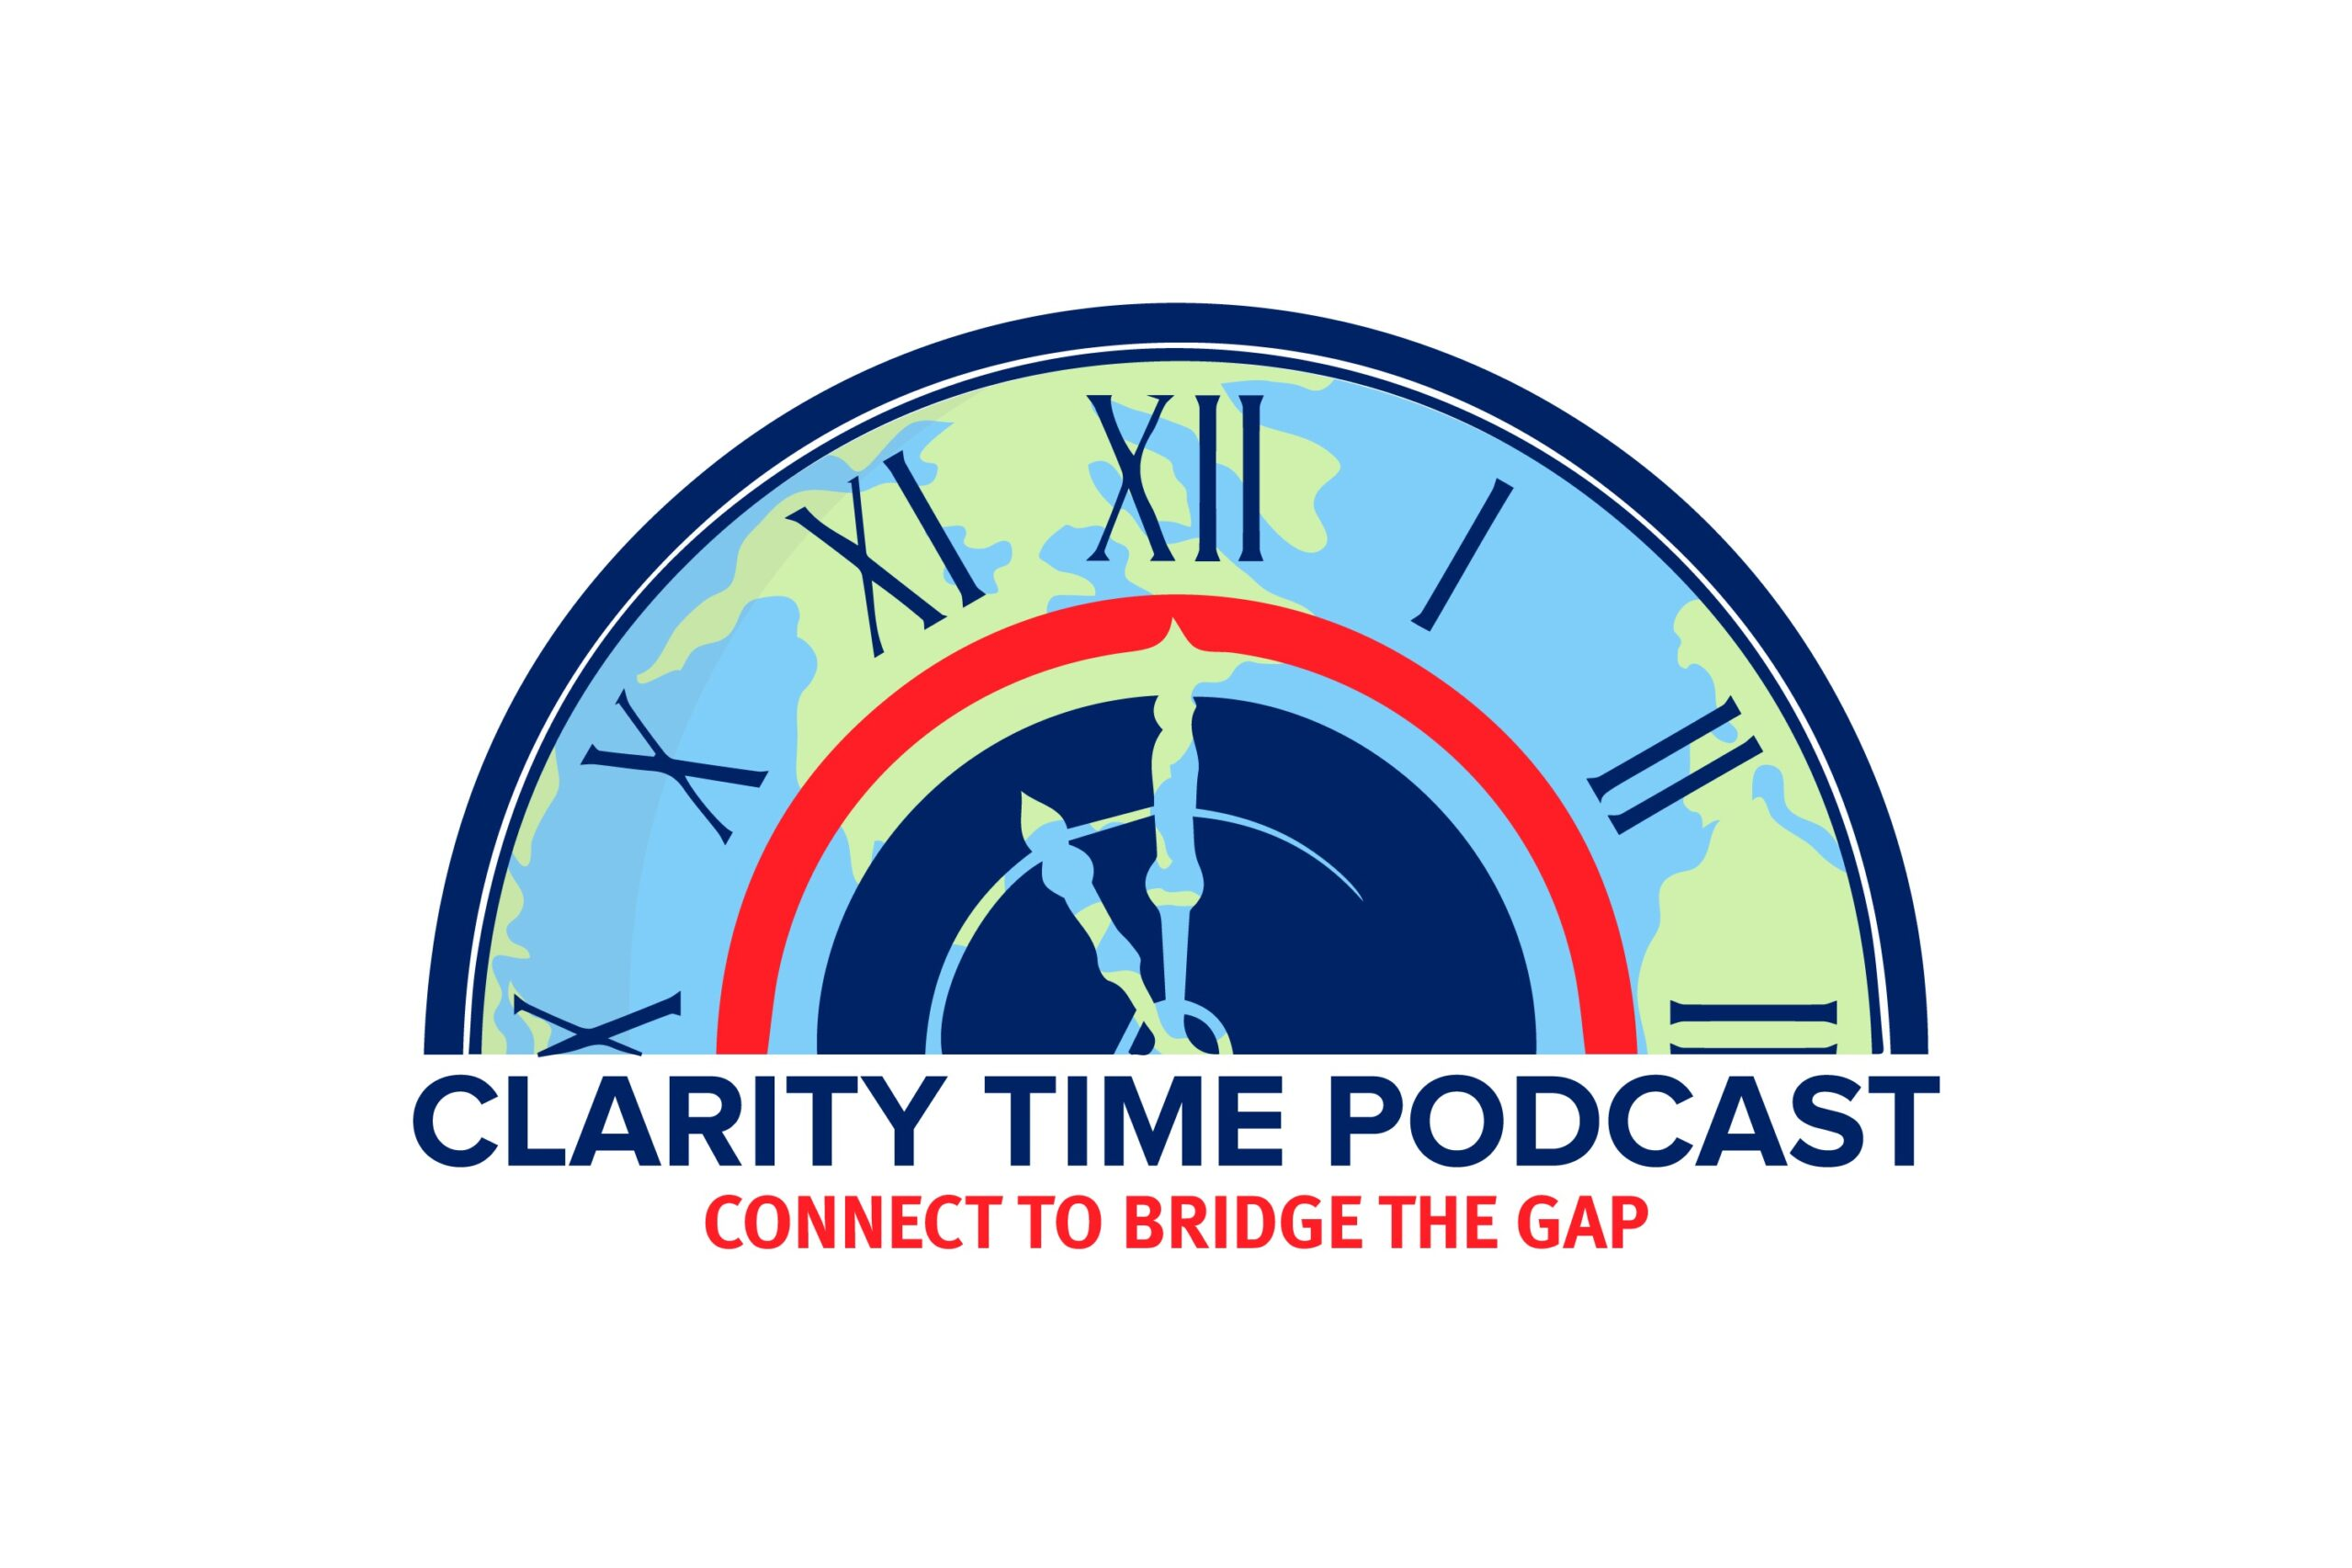 The ClarityTimes Podcast is back